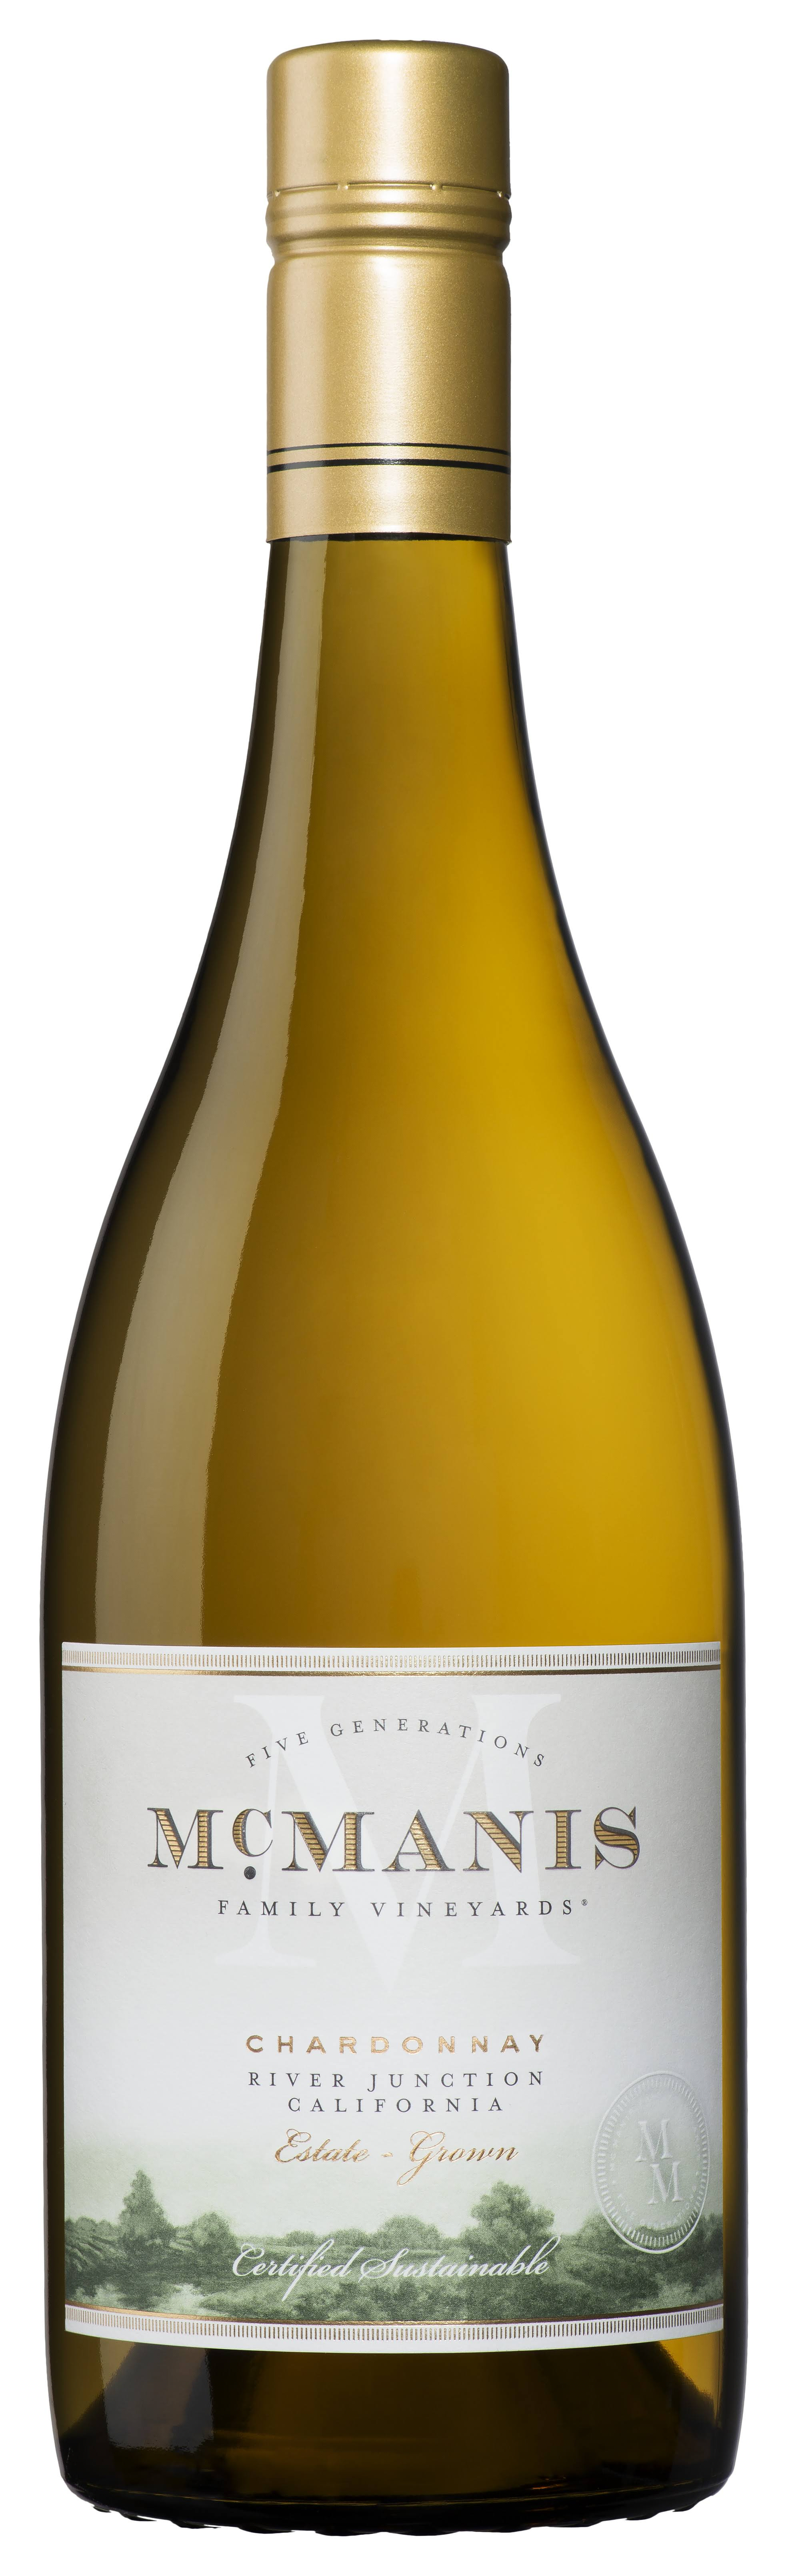 McManis Family Vineyards Chardonnay, River Junction California, 2006 - 750 ml